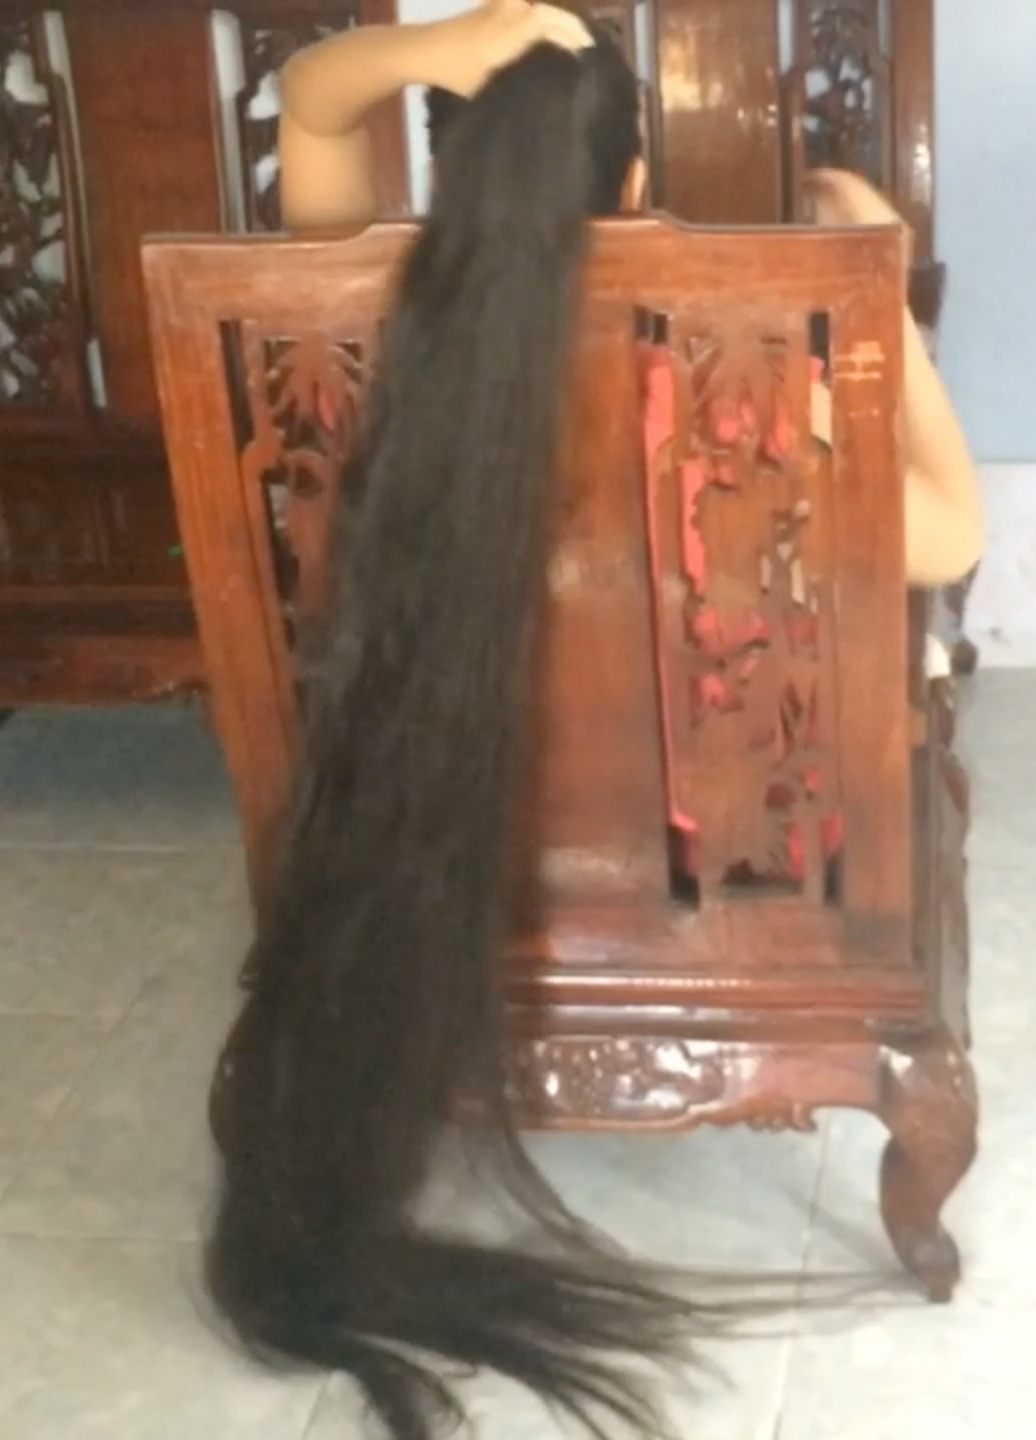 Long hair play videos